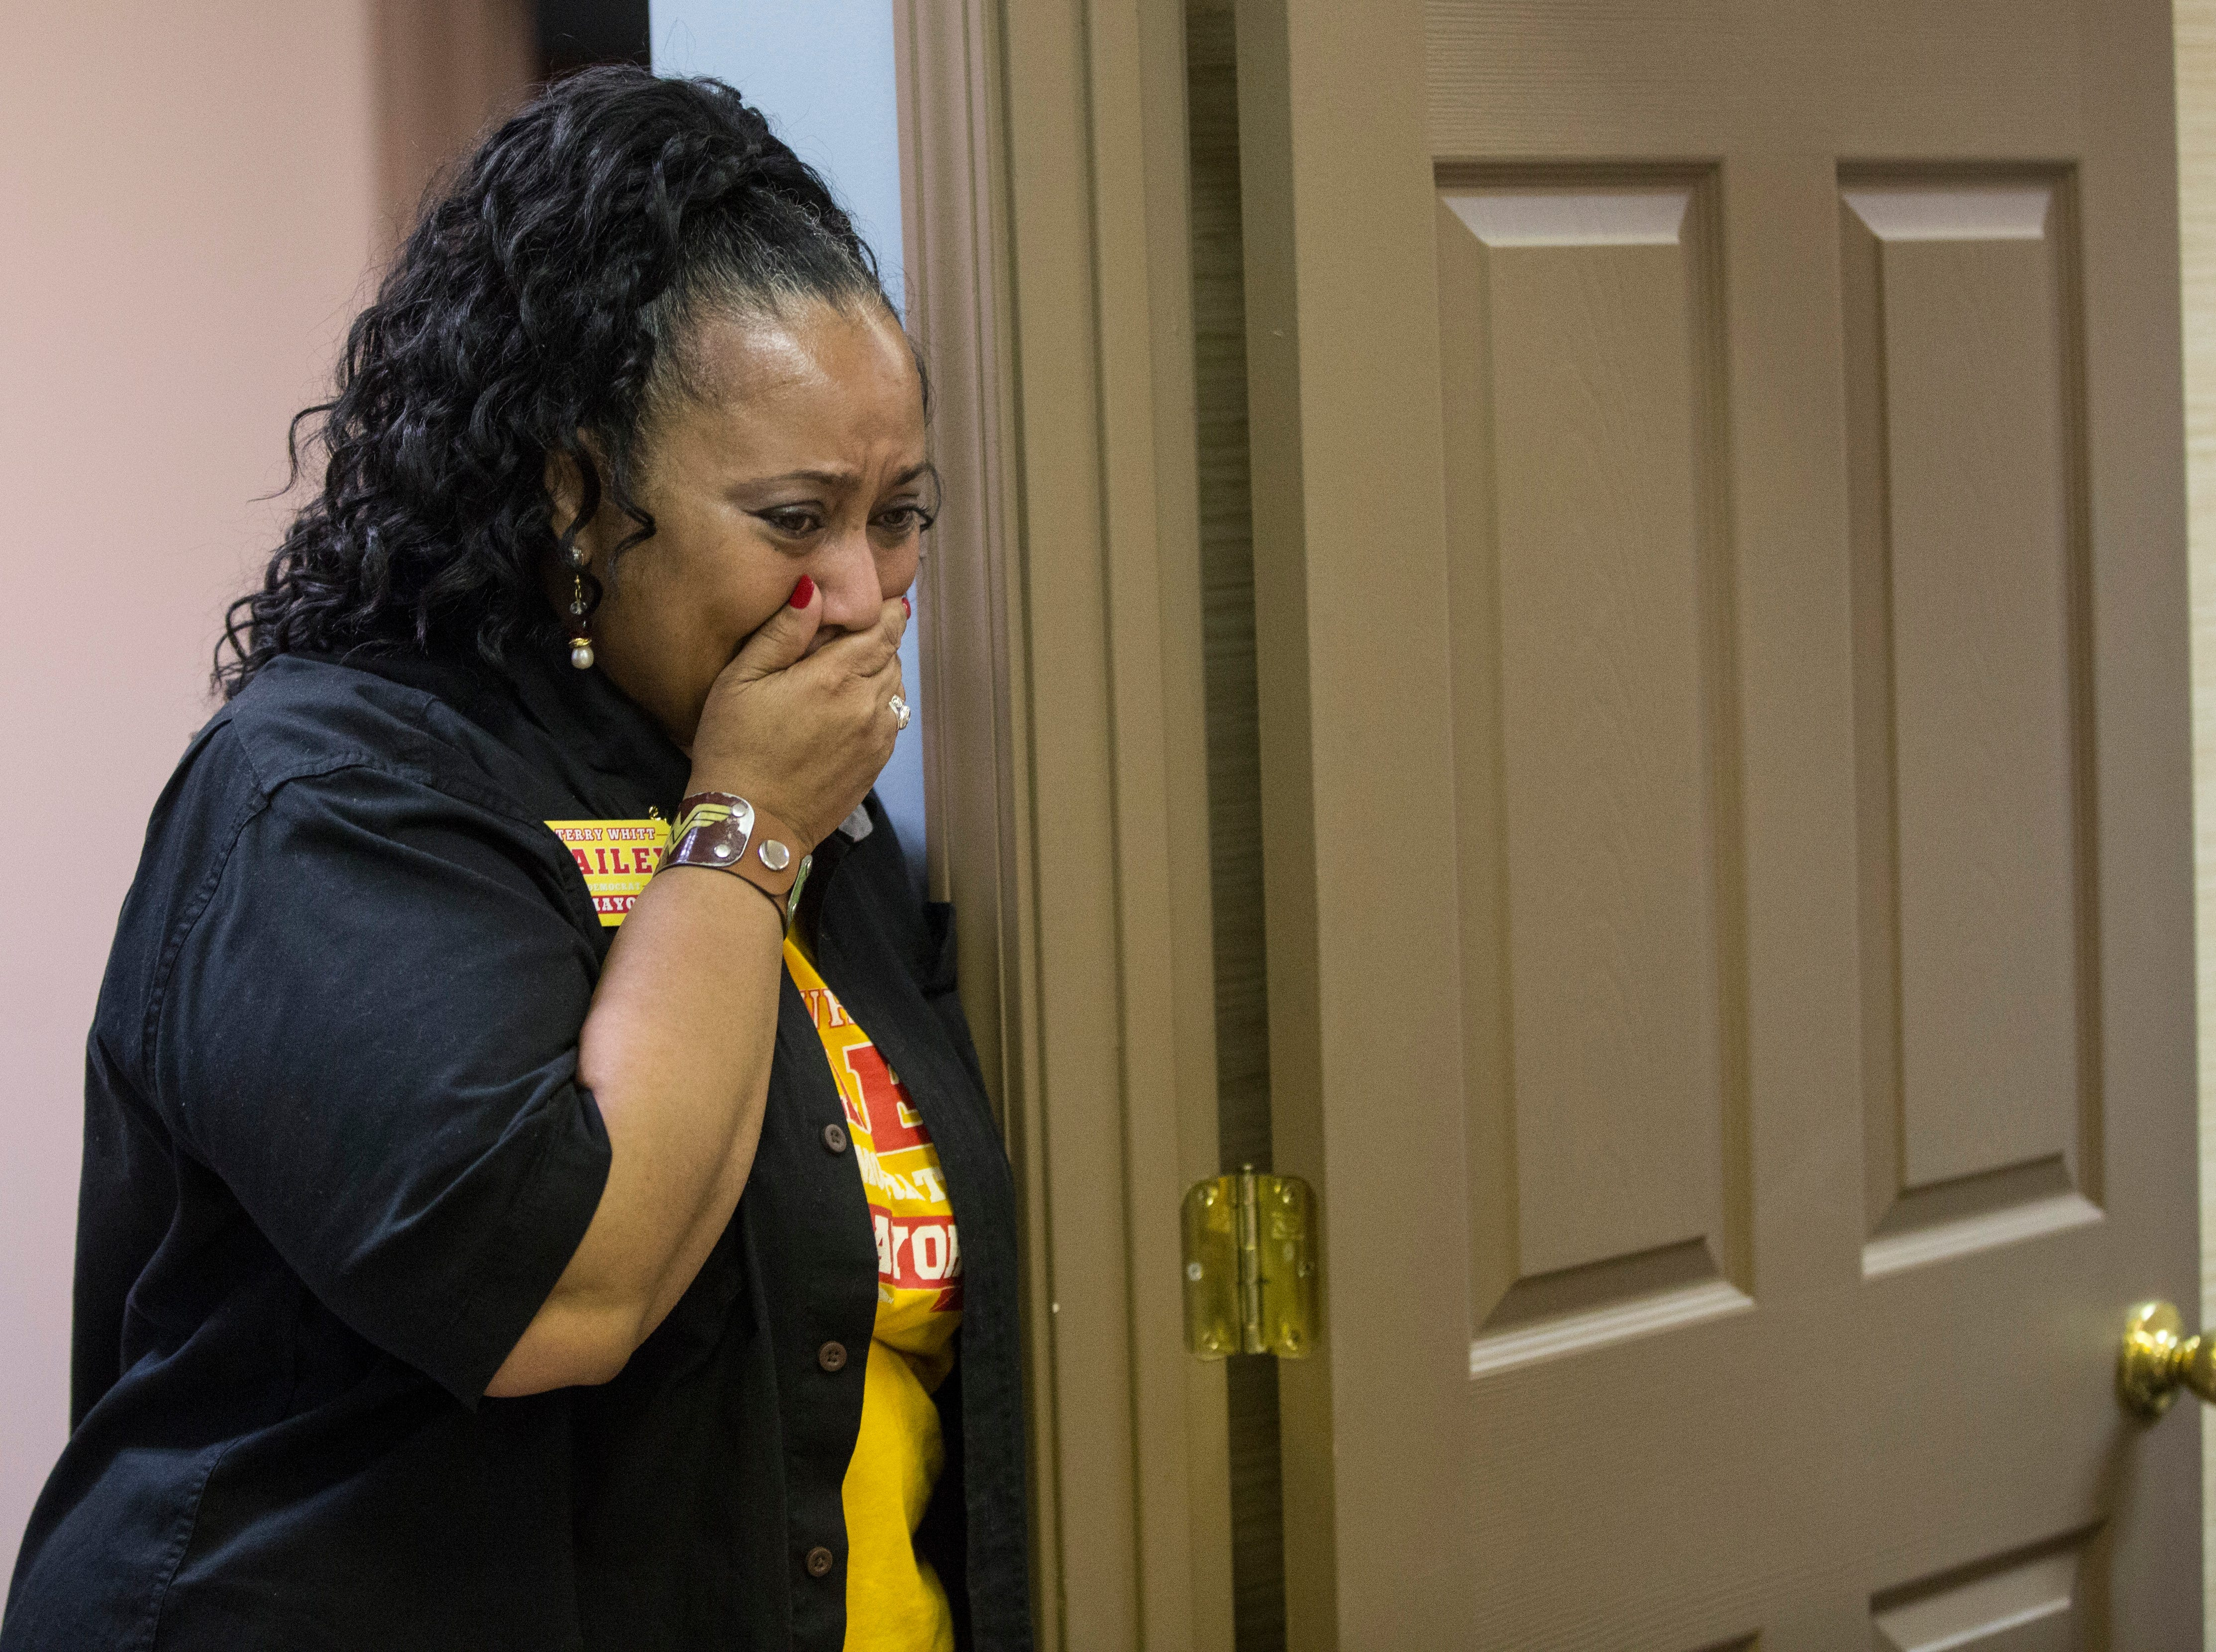 Terry Whitt Bailey is overcome with emotion as she learns she won the Democratic nomination for Muncie's Mayor in the May 7 primary. Bailey won the election with 1,791 votes.